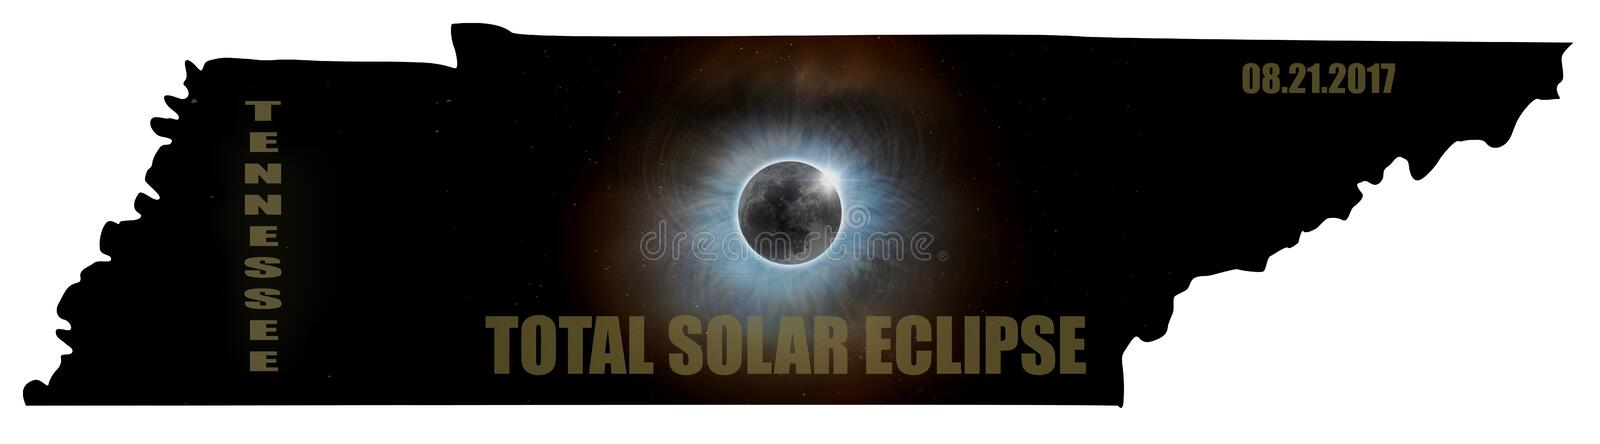 Eclissi solare totale in Tennessee Map Outline U.S.A. royalty illustrazione gratis